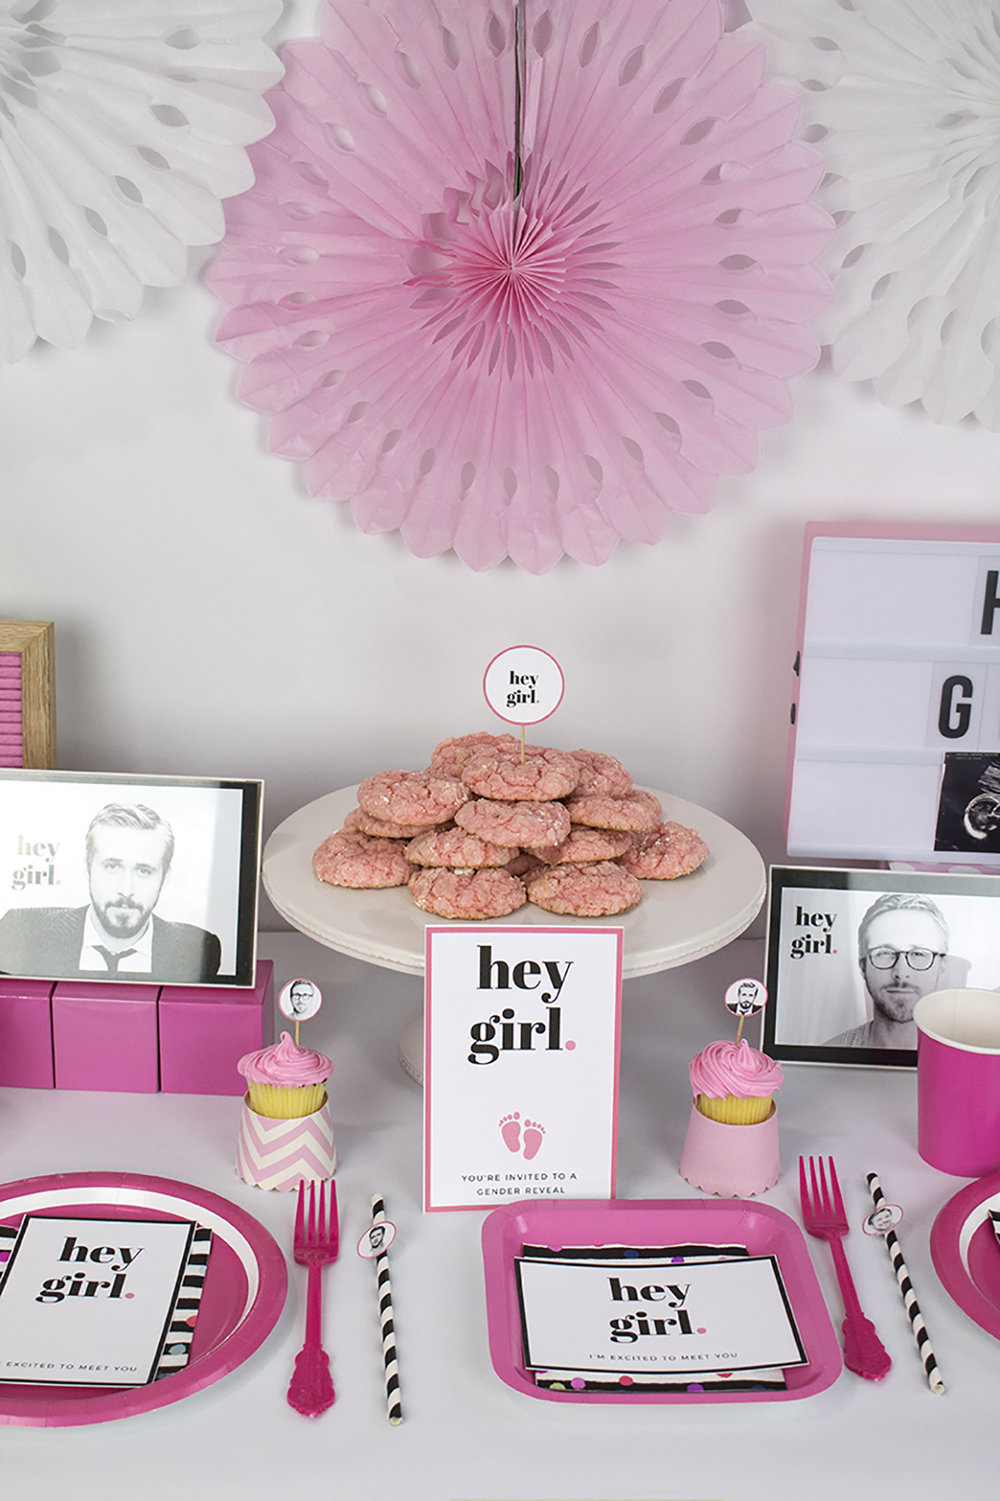 Hey Girl Gender Reveal 4.jpg